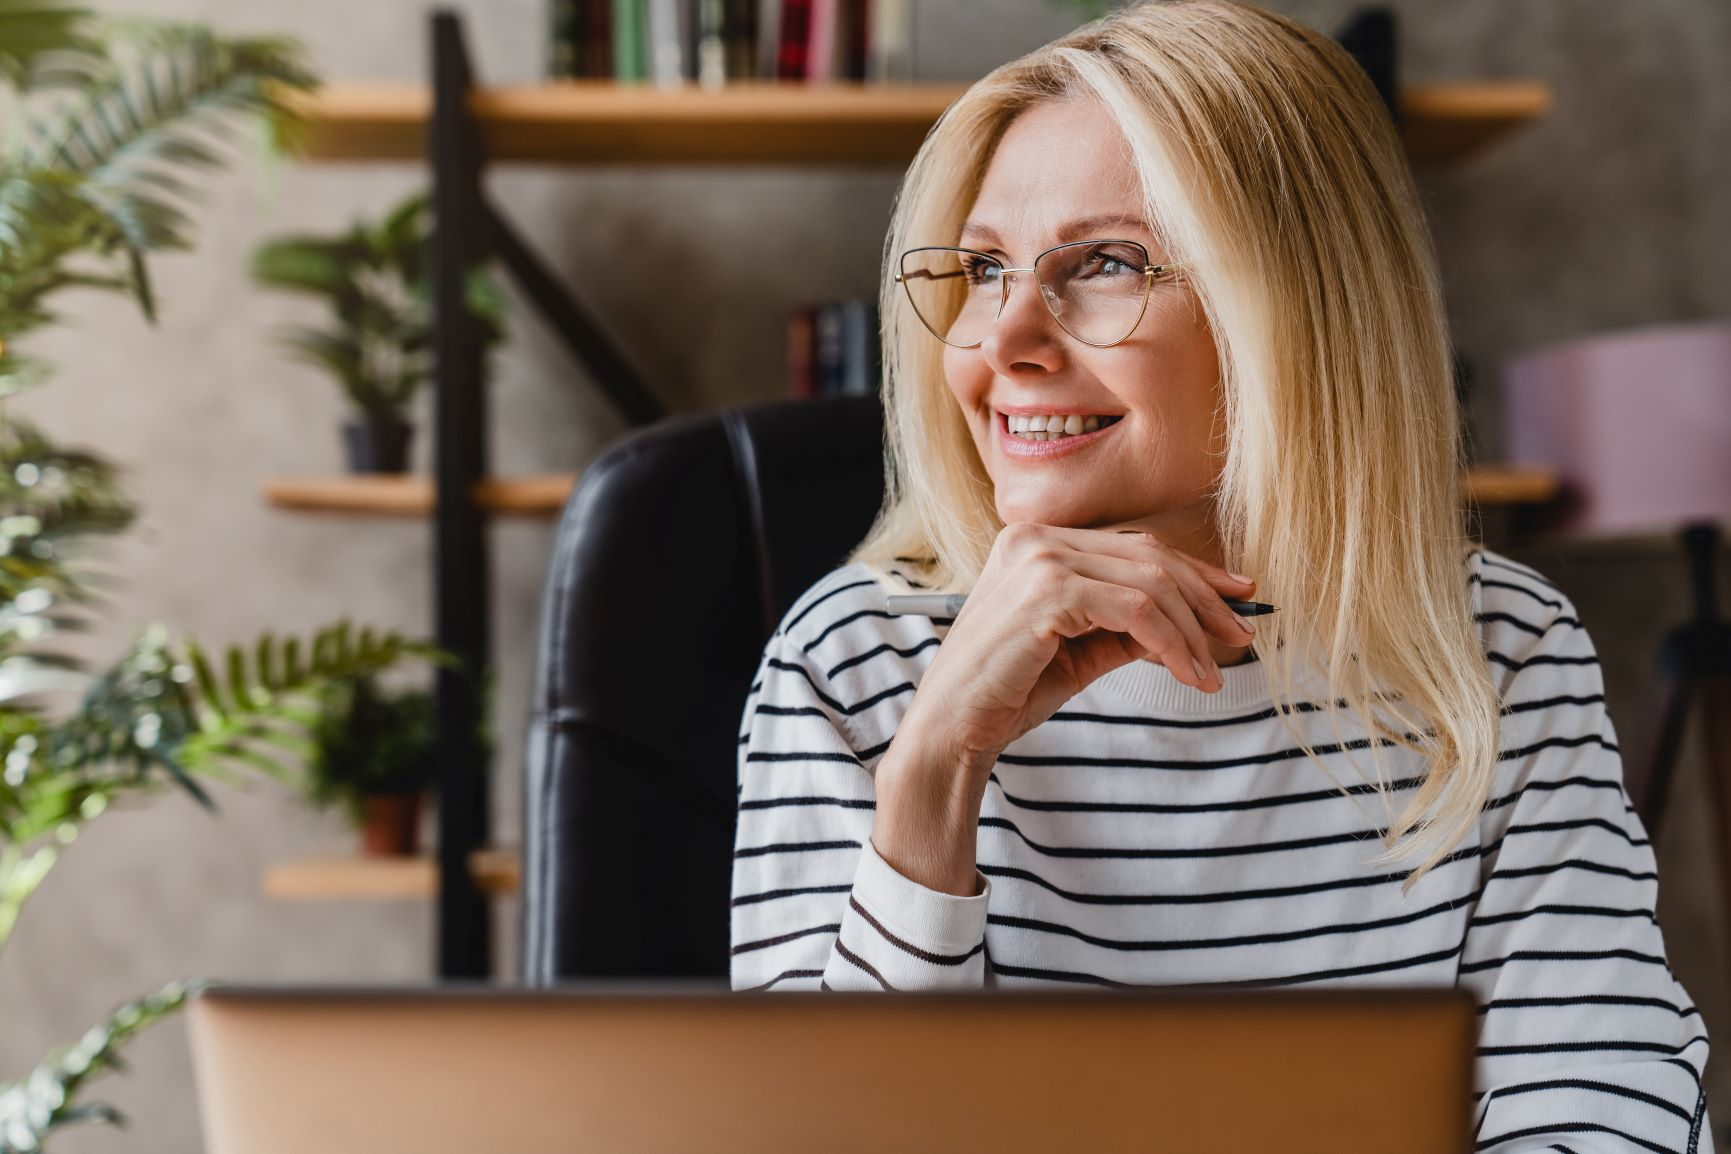 Blonde woman with shoulder-length hair and glasses in white & black striped shirt at comptuer dreaming manifestation for beginners, manifesting your dream life